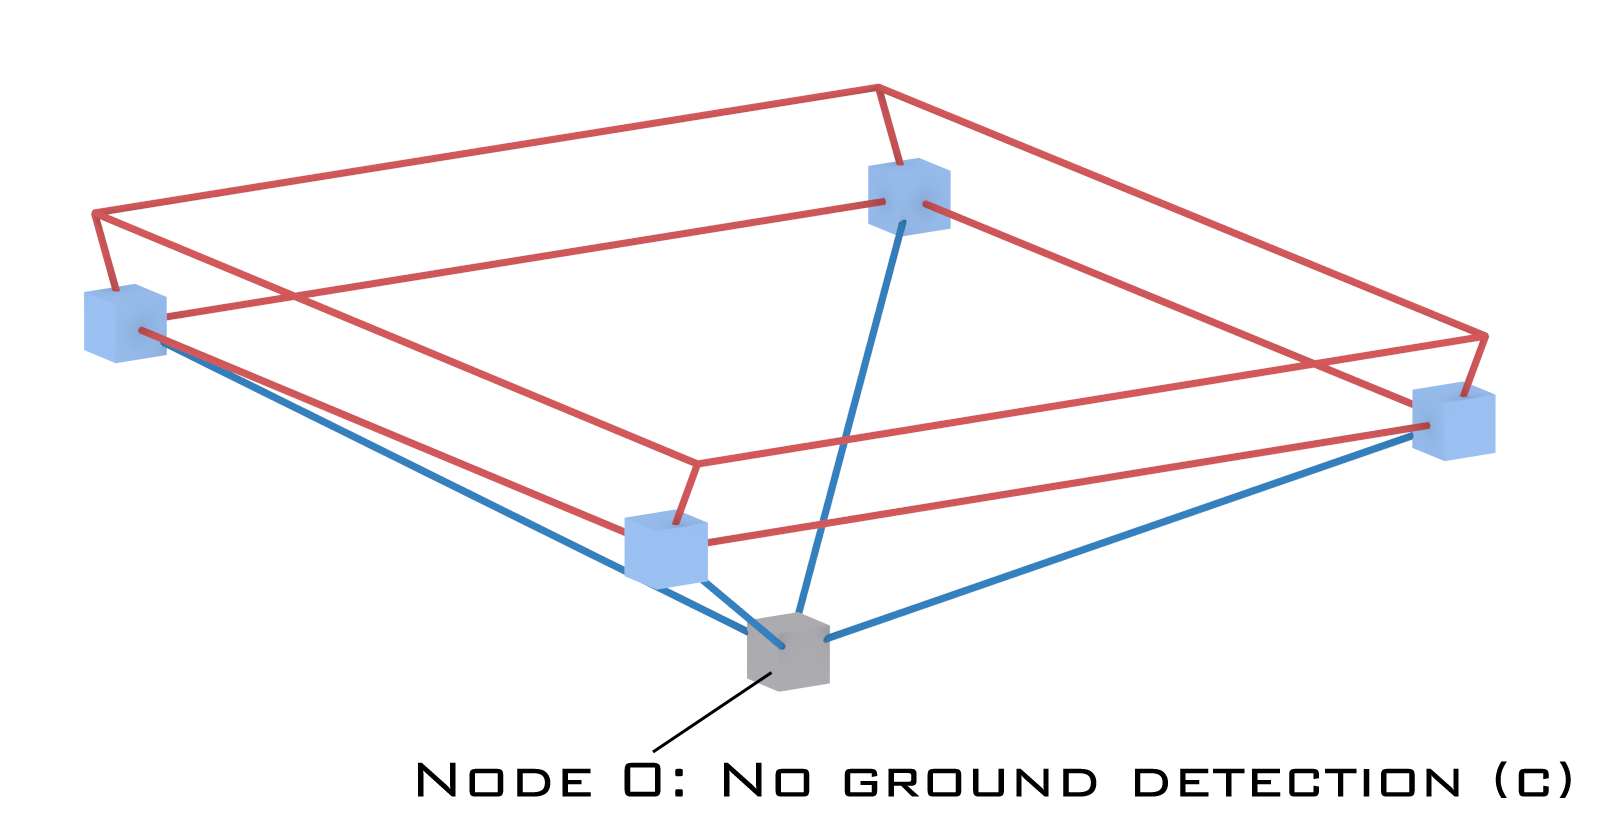 fig11-wagon-node0